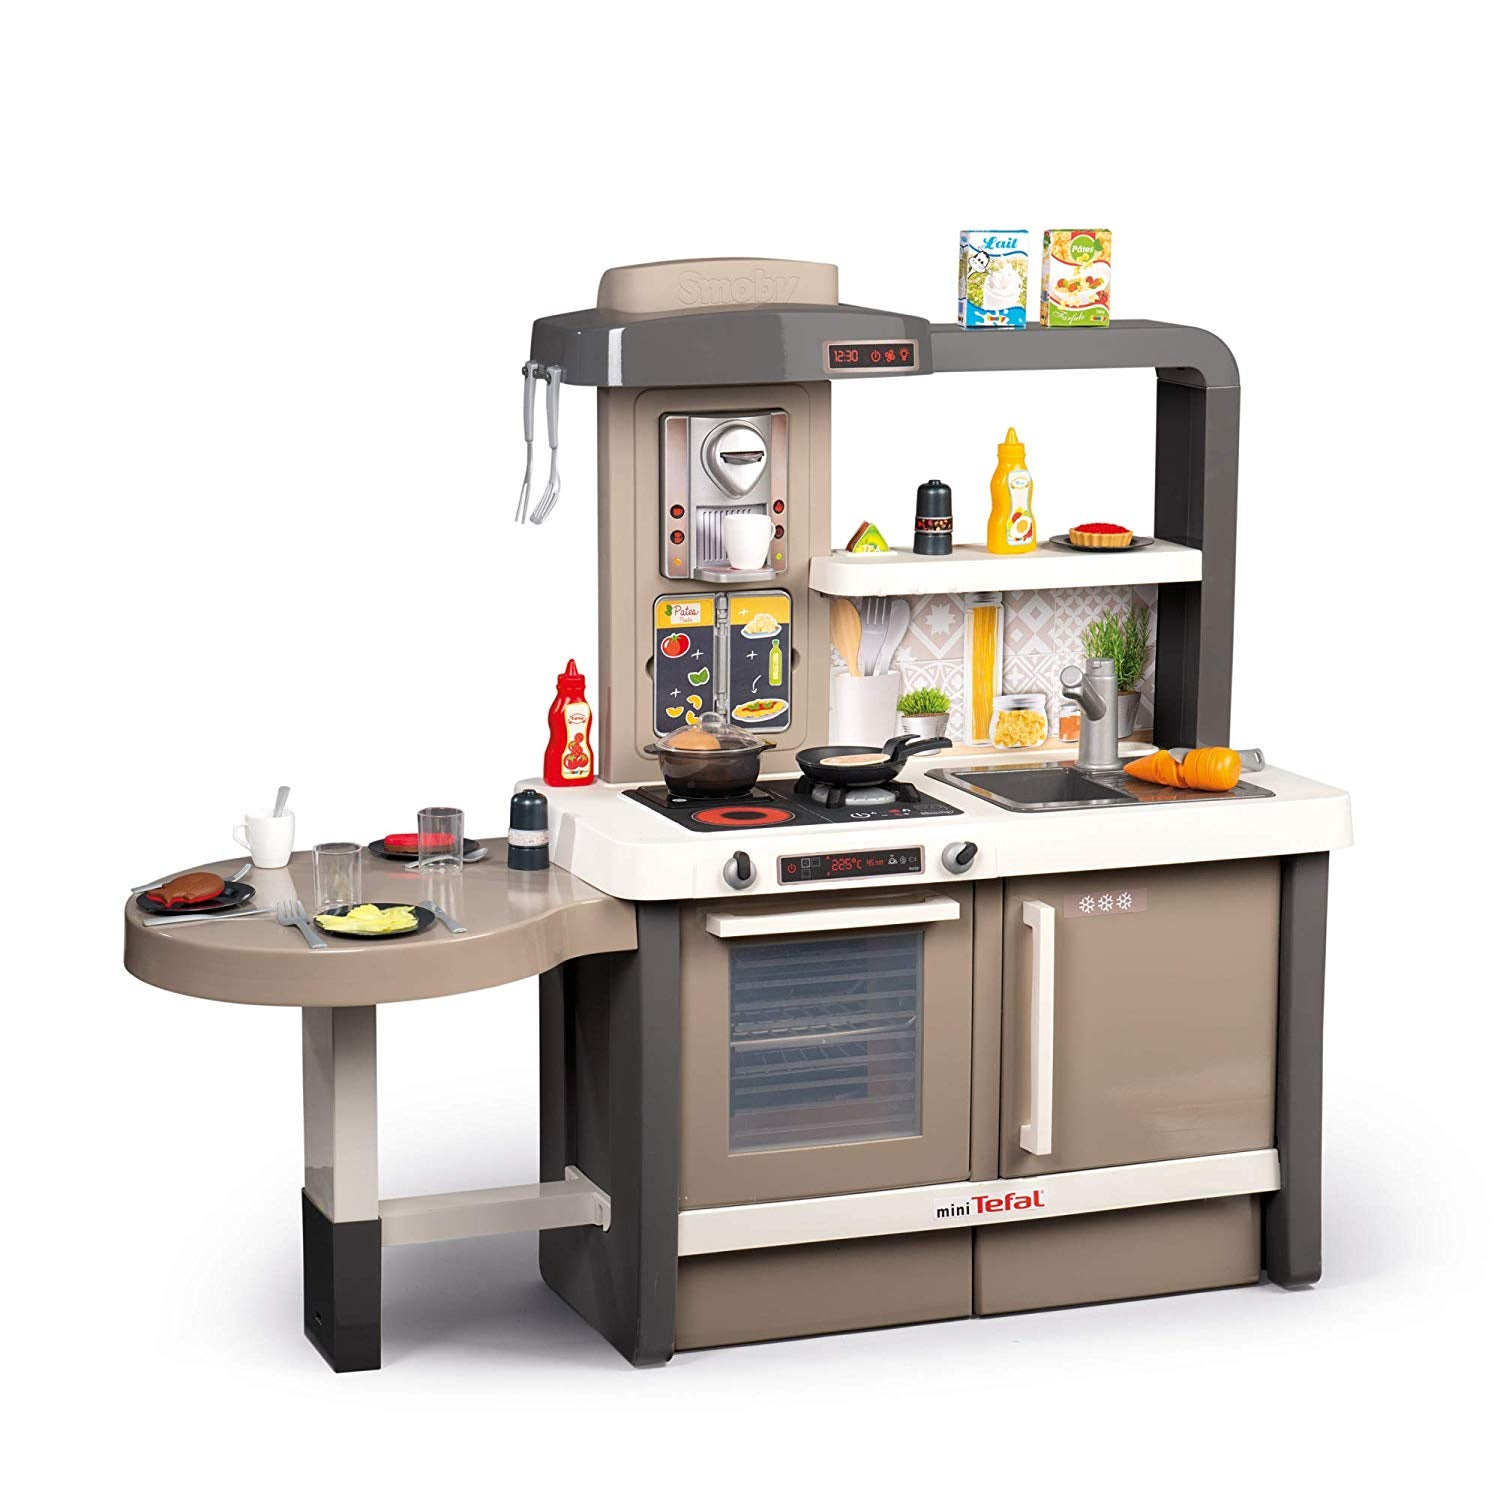 Smoby Tefal Evolutive Cuisine Kitchen